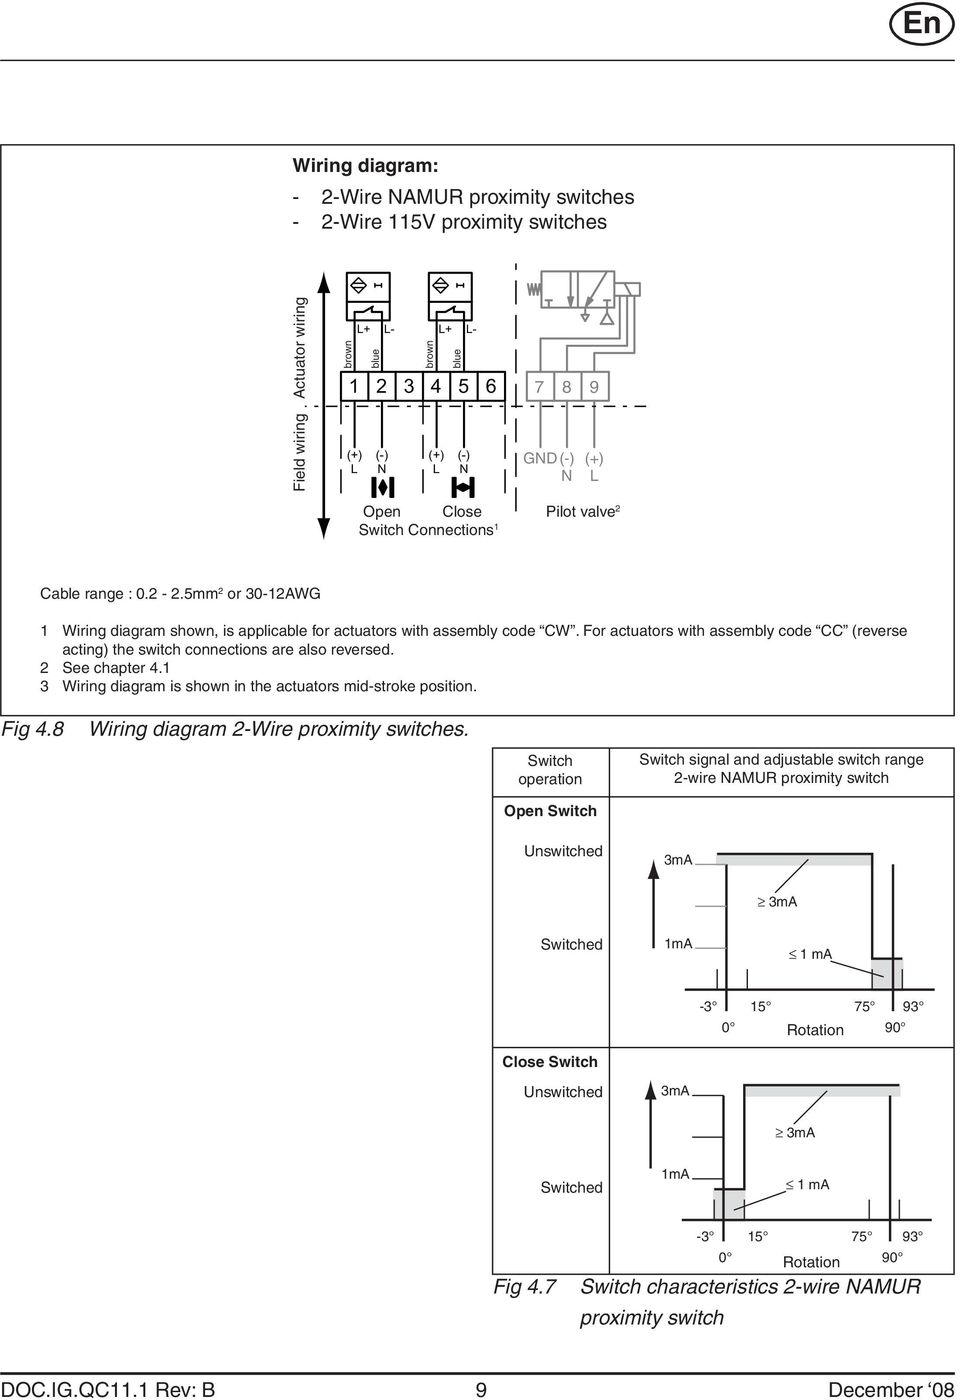 hight resolution of for actuators with assembly code cc reverse acting the switch connections are also reversed